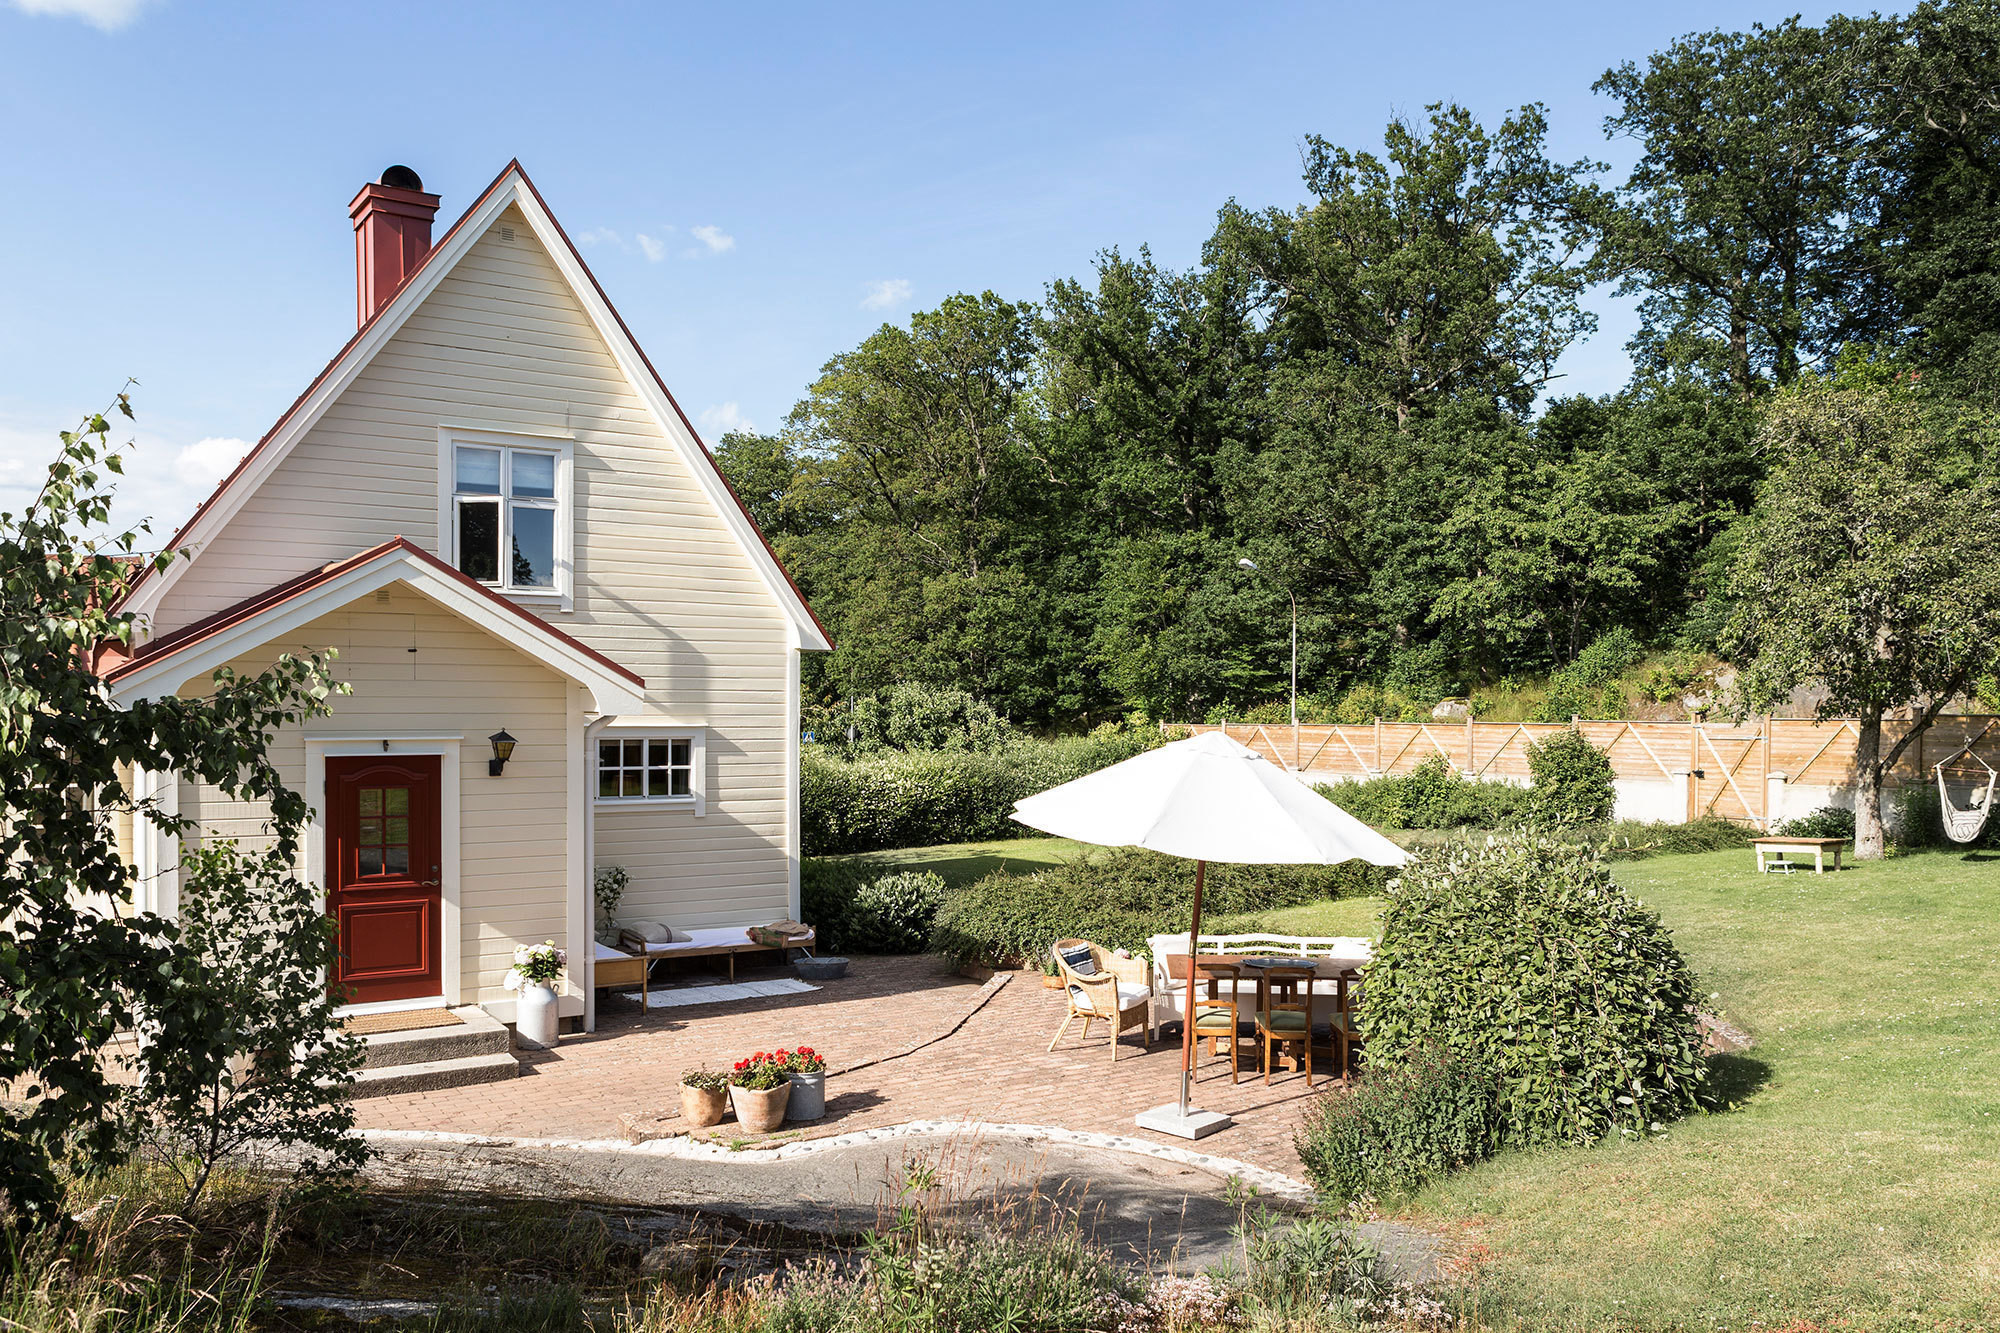 Ulrica Wihlborg and Craig Forrest purchased the1,200-square-foot house as a summer retreatin 2009 and moved there in 2012 with their three young children.